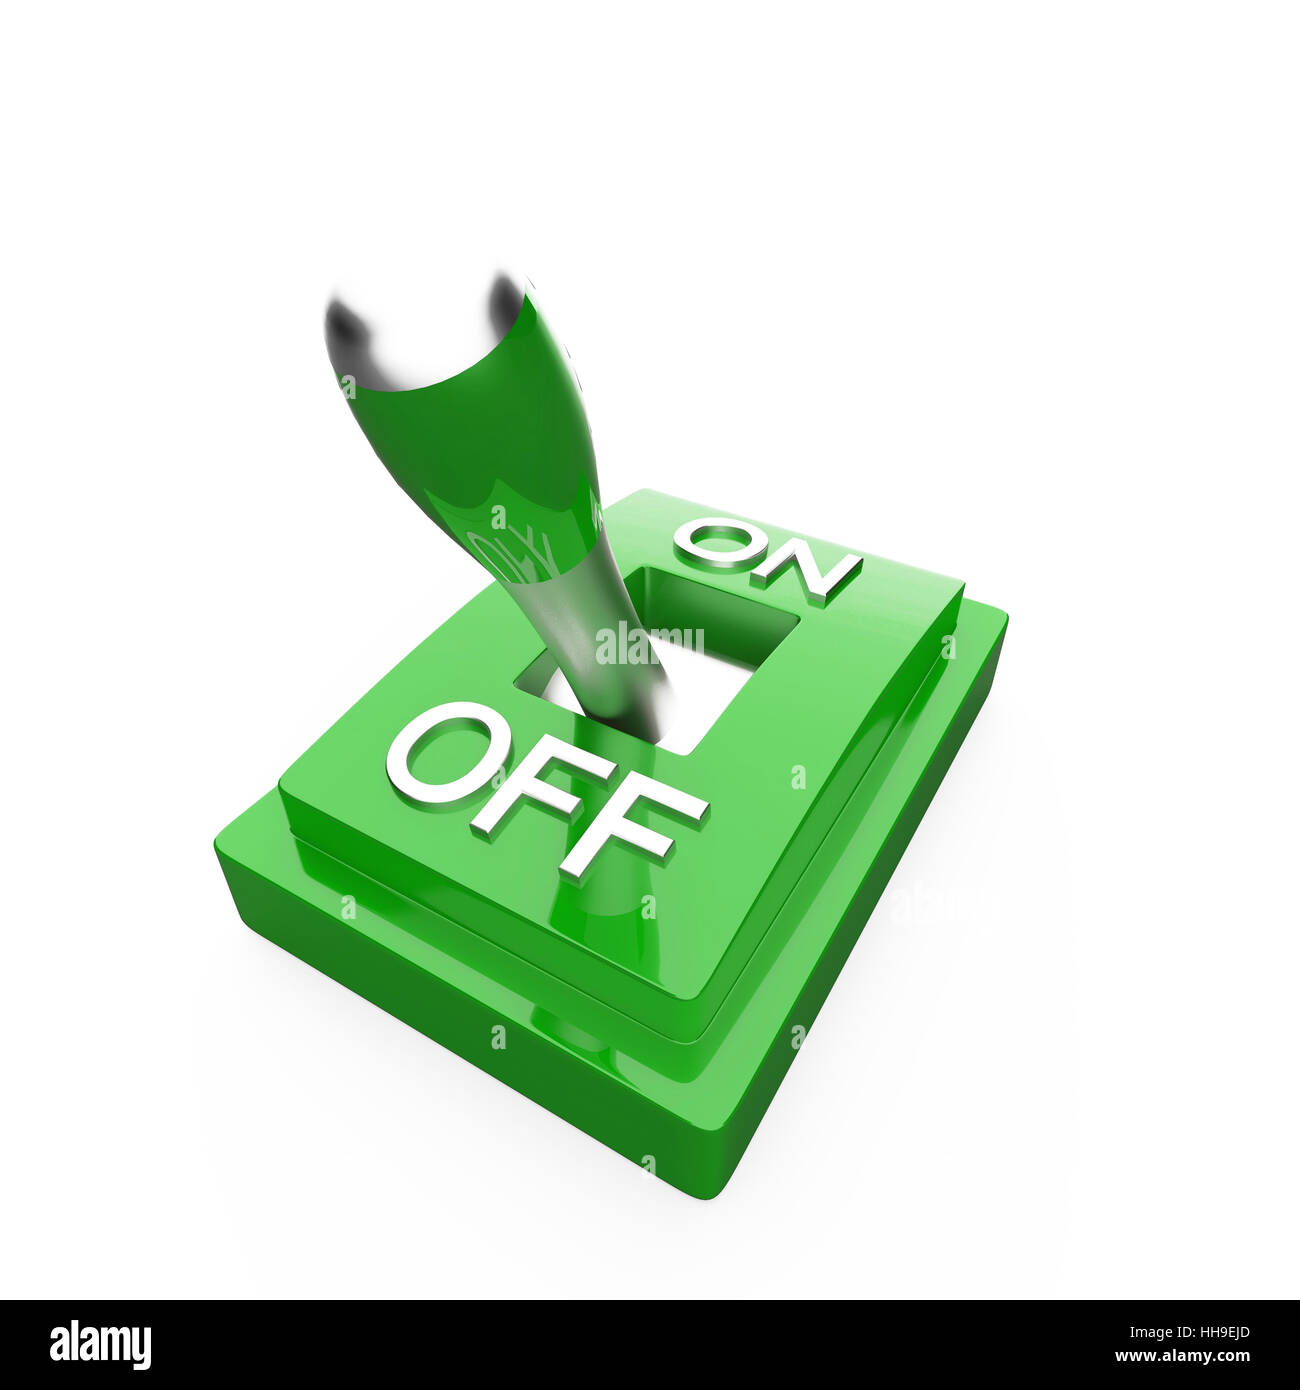 switch, out, one, toggle switch, sign, signal, macro, close-up, macro - Stock Image